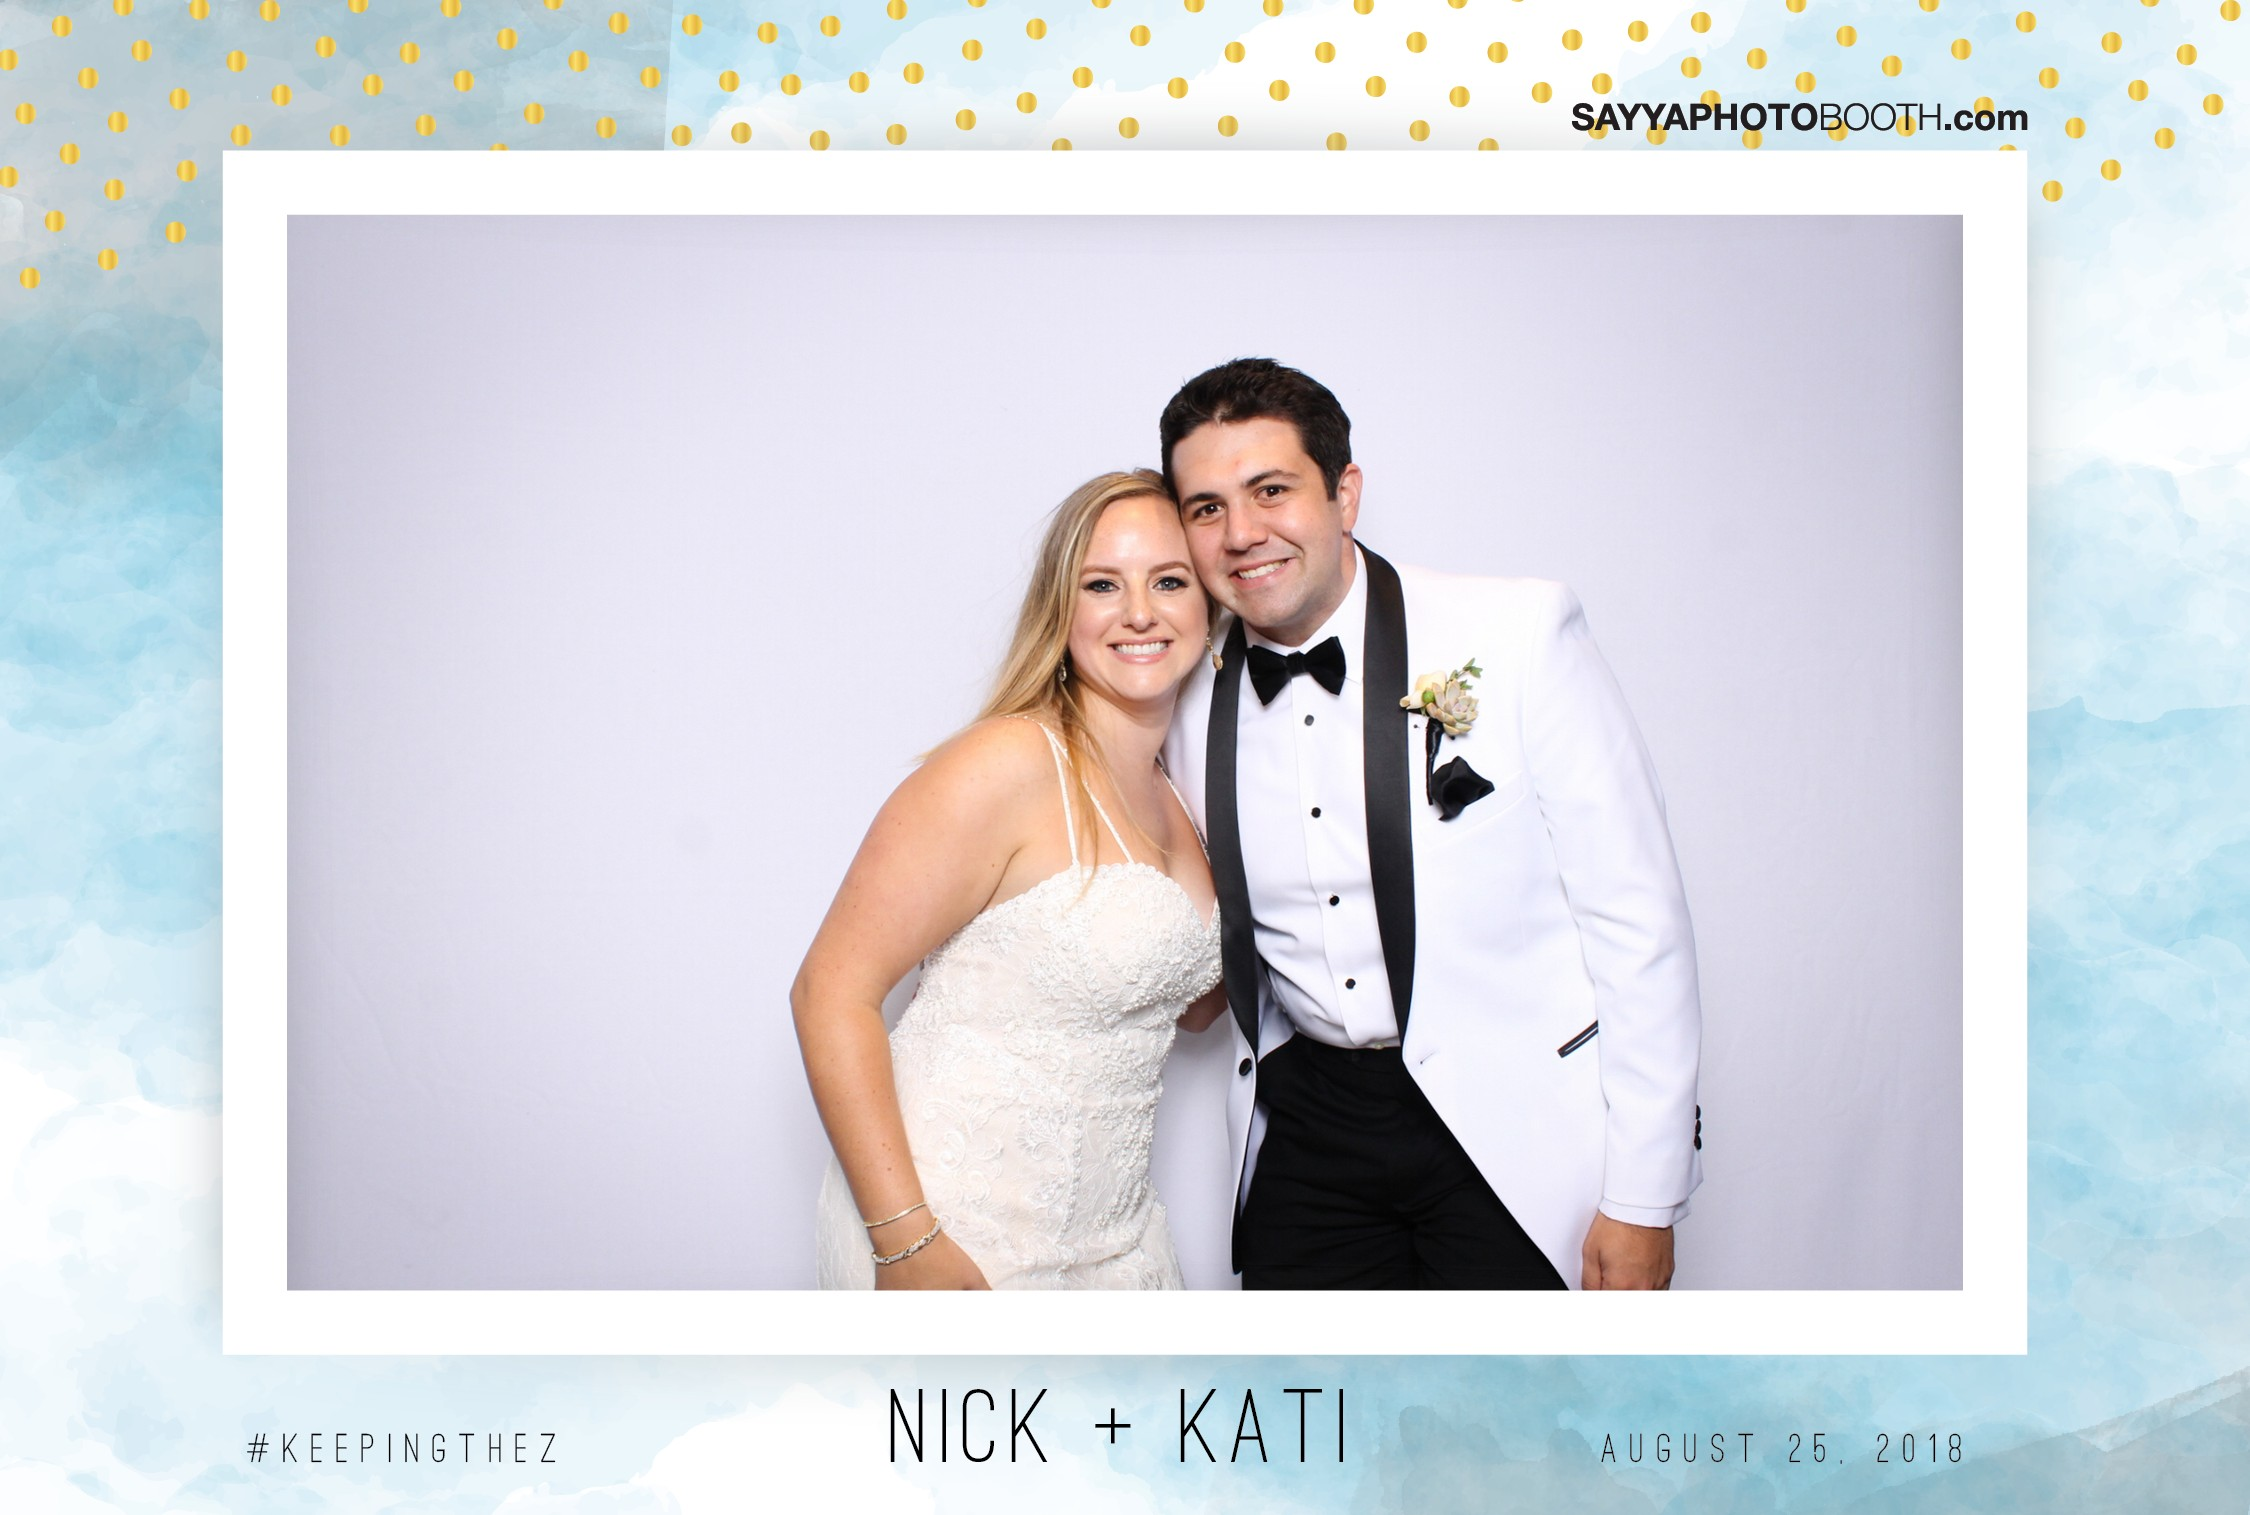 Kati and Nick's Wedding